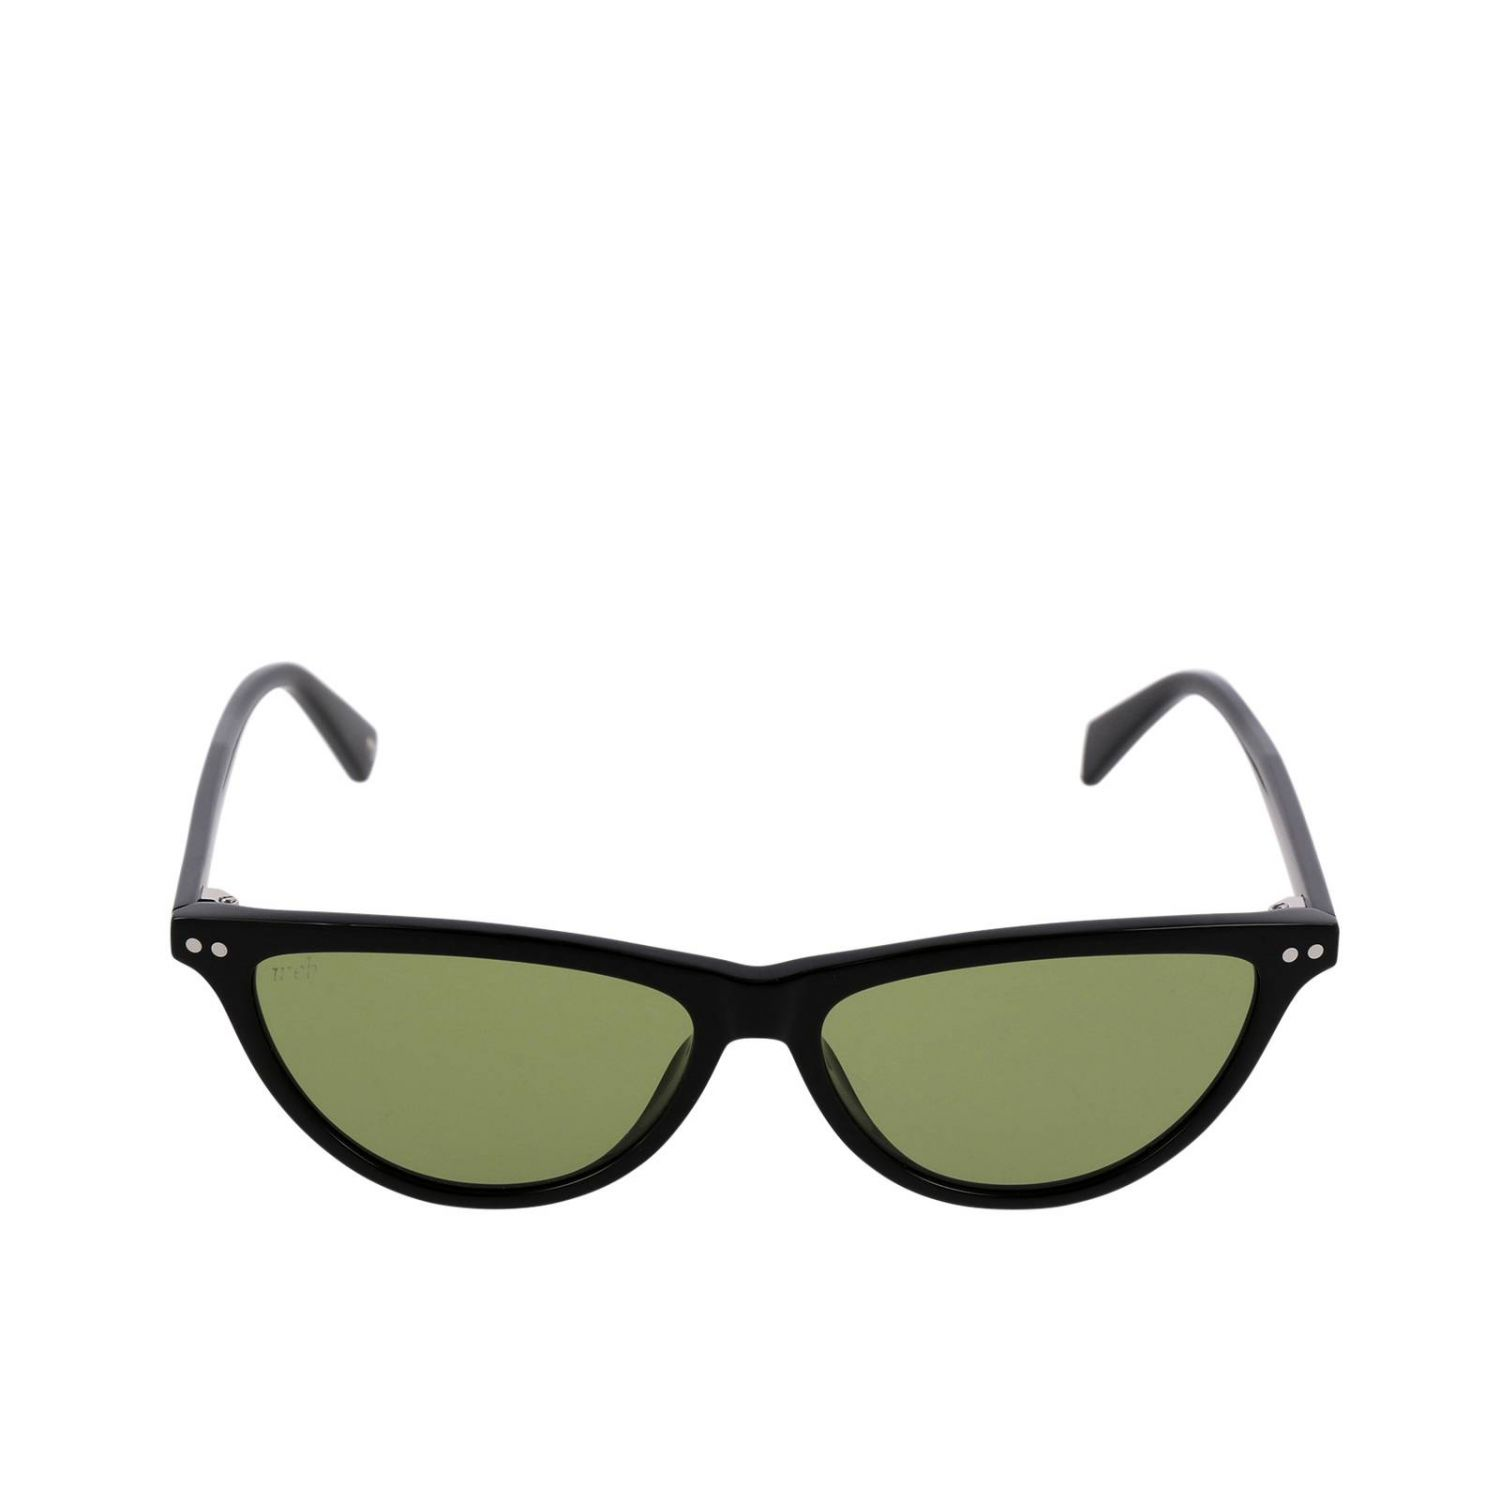 Sunglasses women Web acid green 2